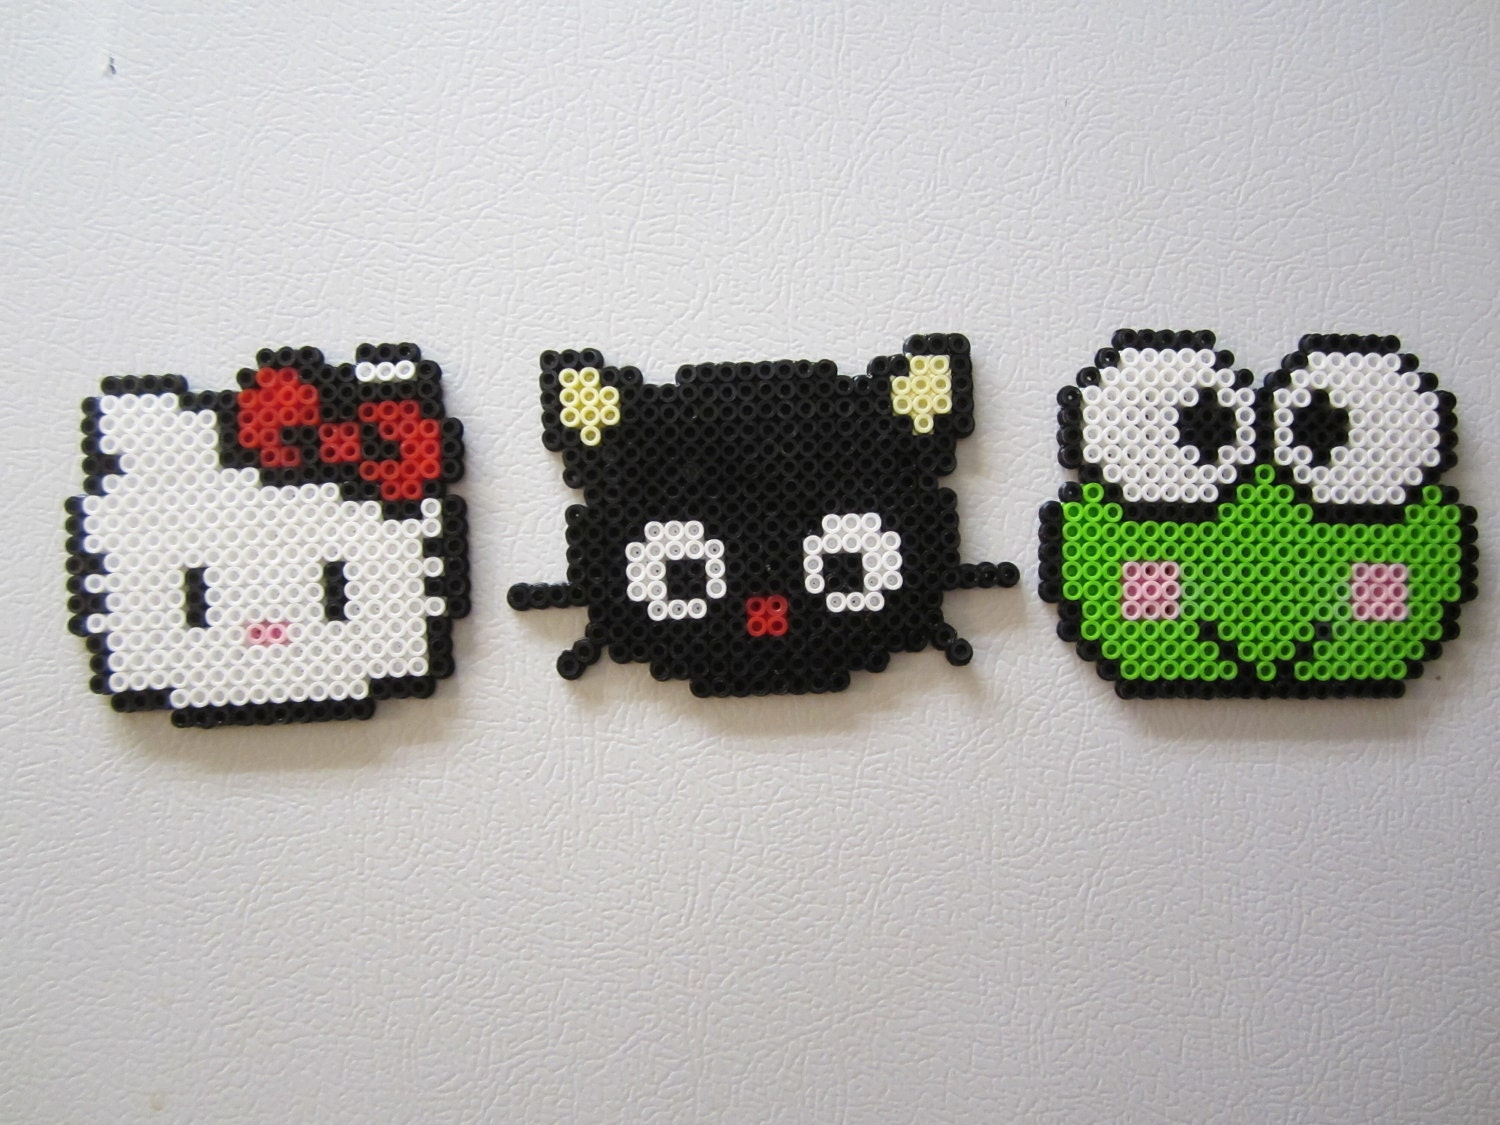 Pin perler beads hello kitty pattern page 3 on pinterest picture